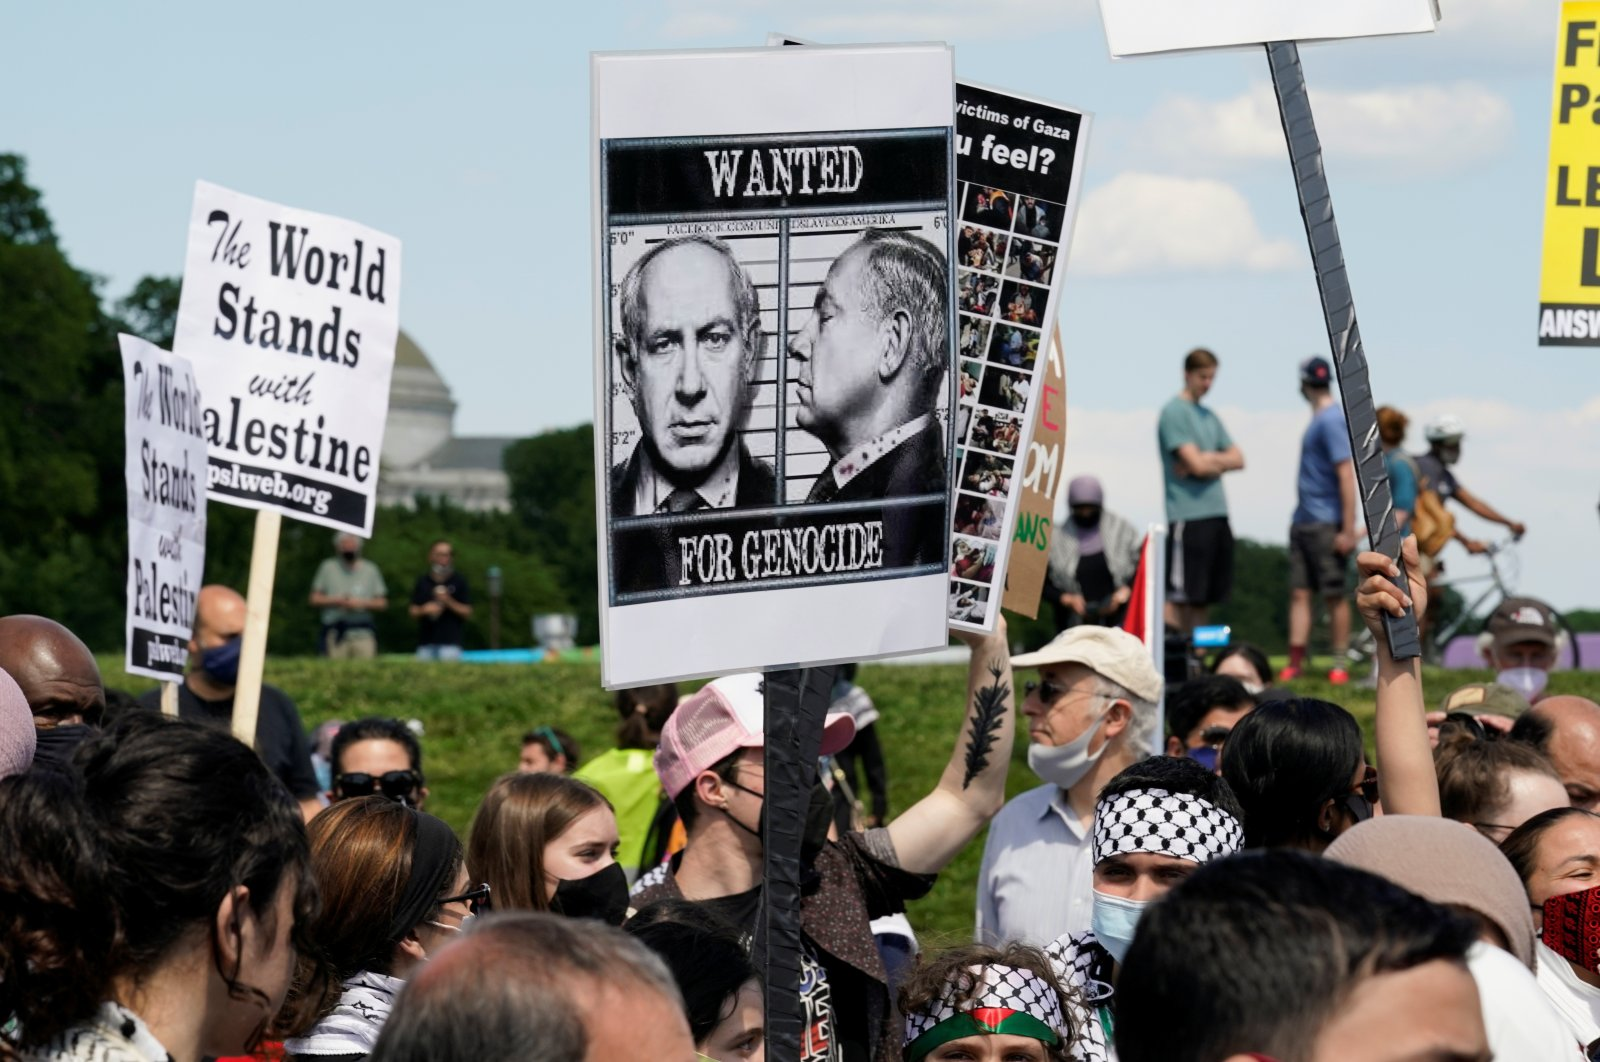 A pro-Palestinian demonstrator holds a placard with a photograph of Israeli Prime Minister Benjamin Netanyahu during a rally at the Washington Monument in Washington, U.S., May 15, 2021. (Reuters Photo)